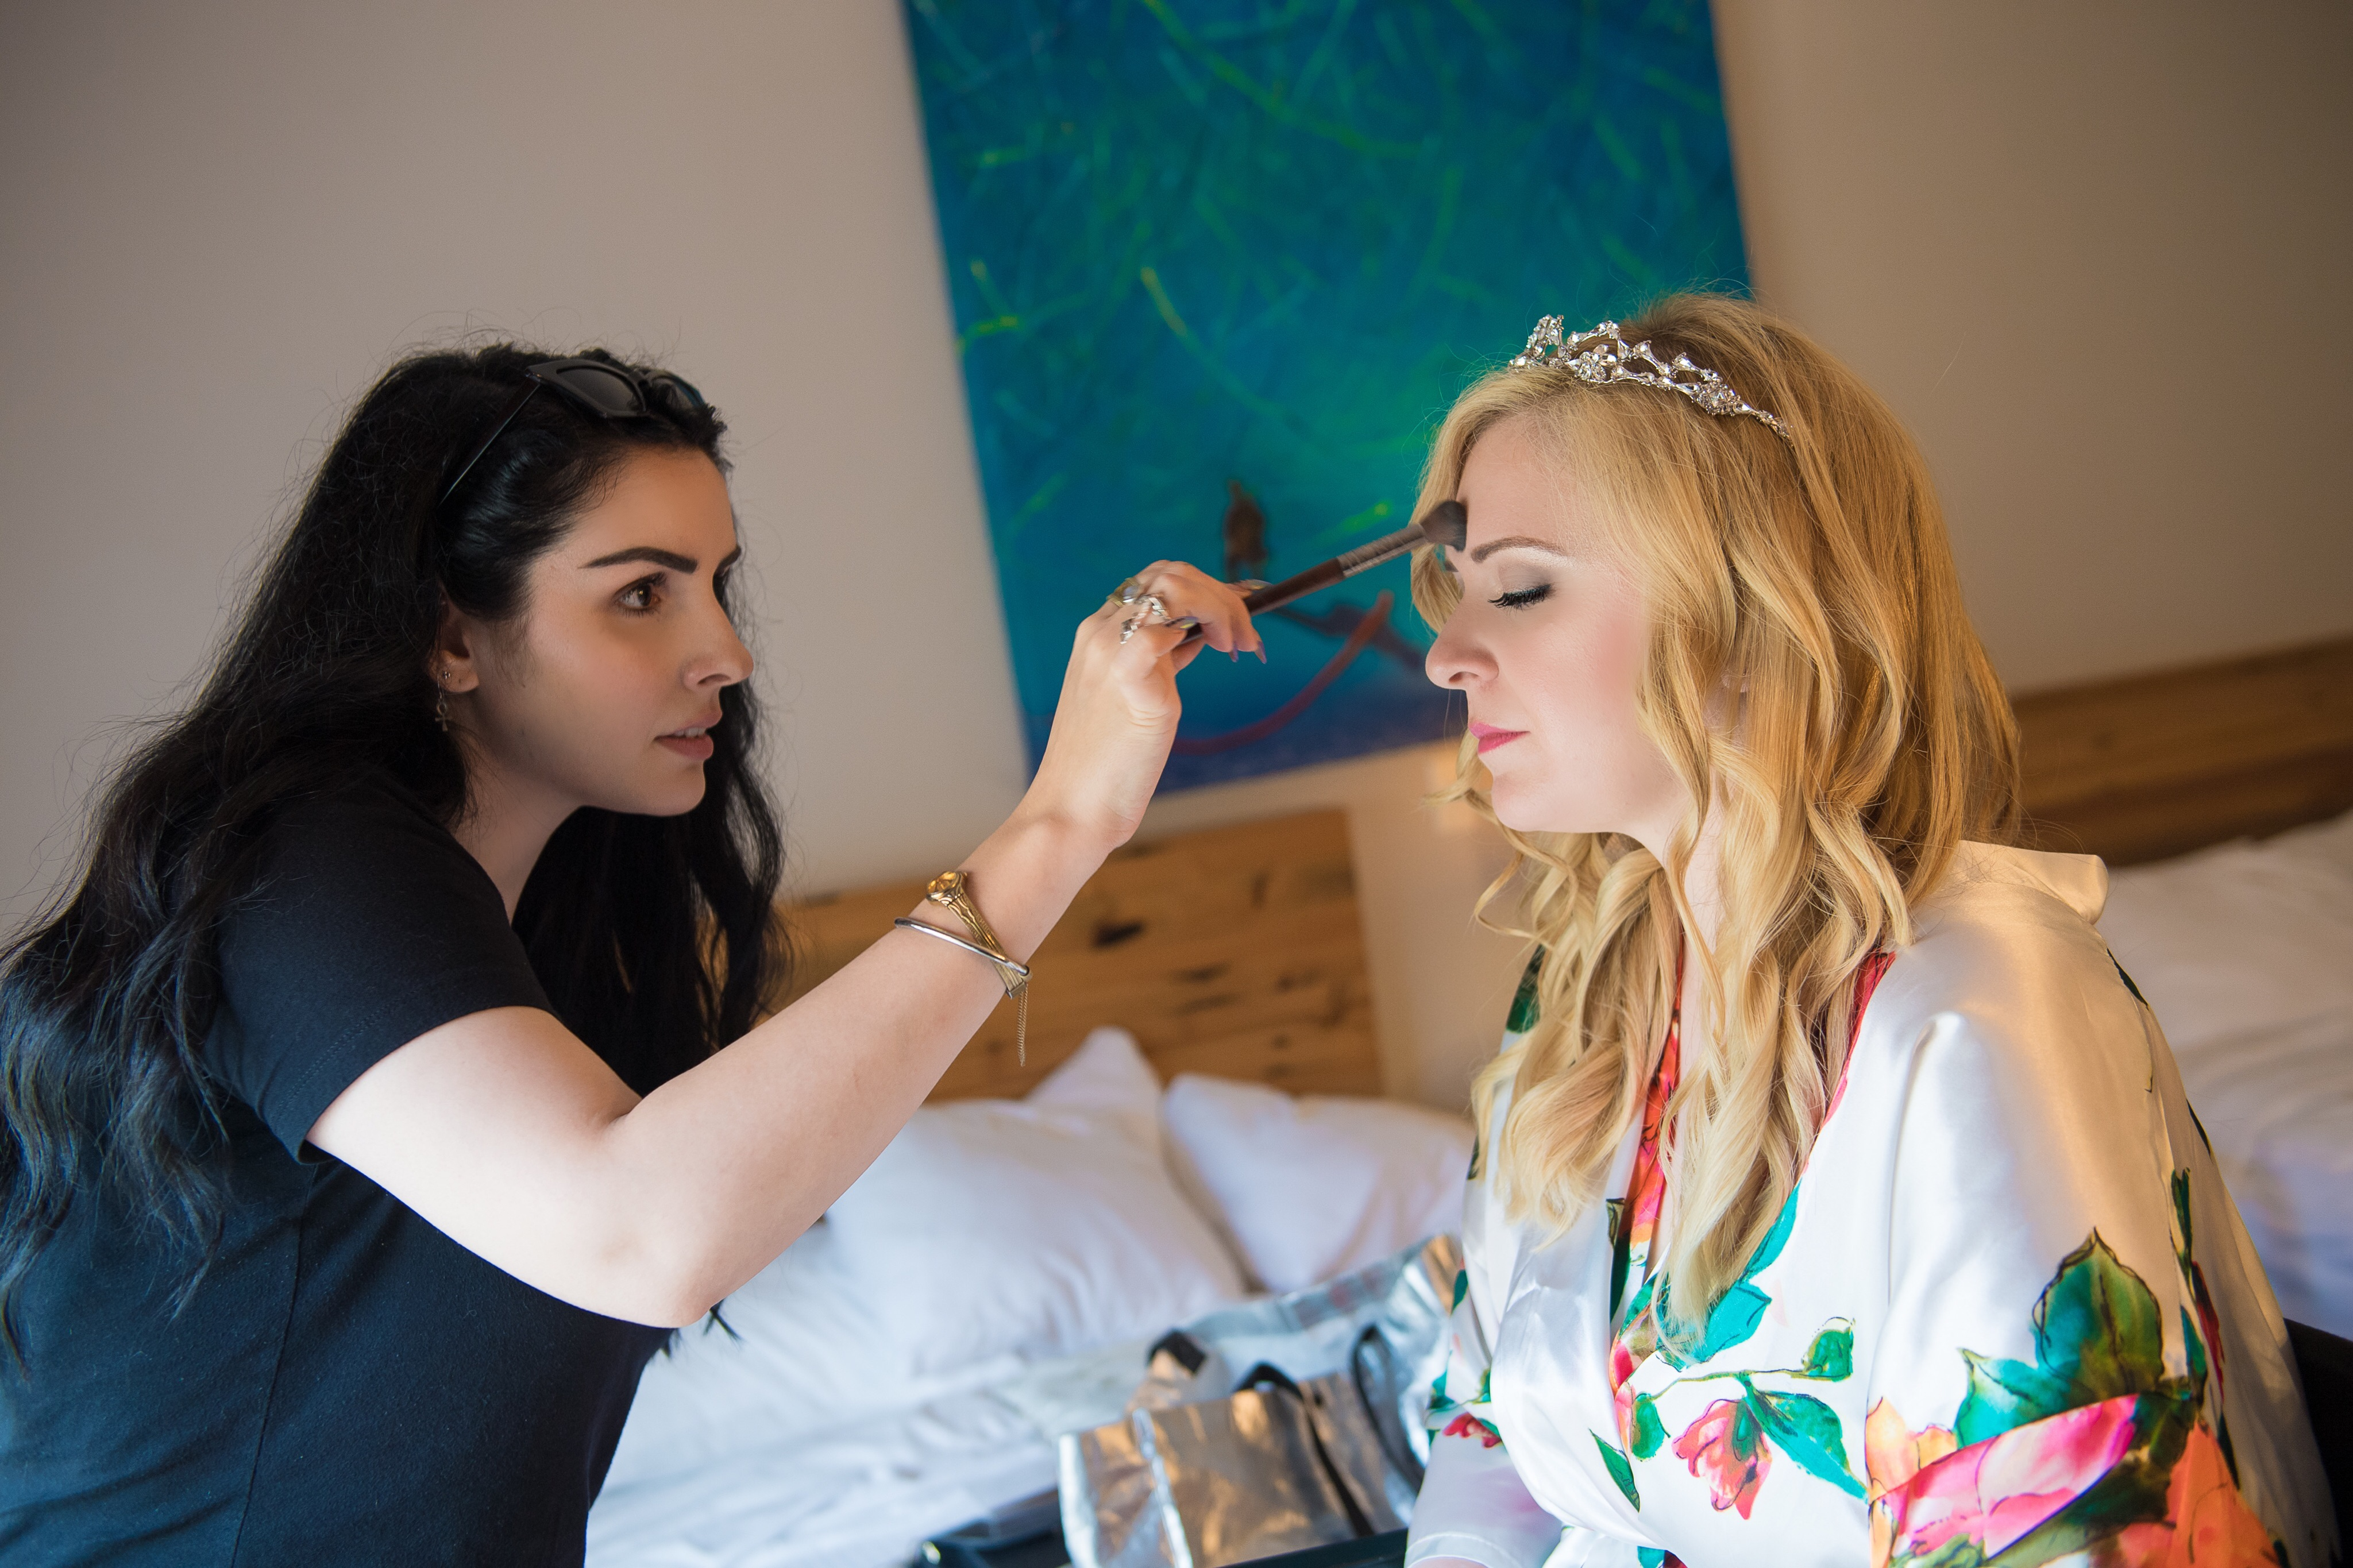 Julie makeup  Our Magical Wedding  Part One (Getting ready with your bridal party,  plus hotel room must haves!)